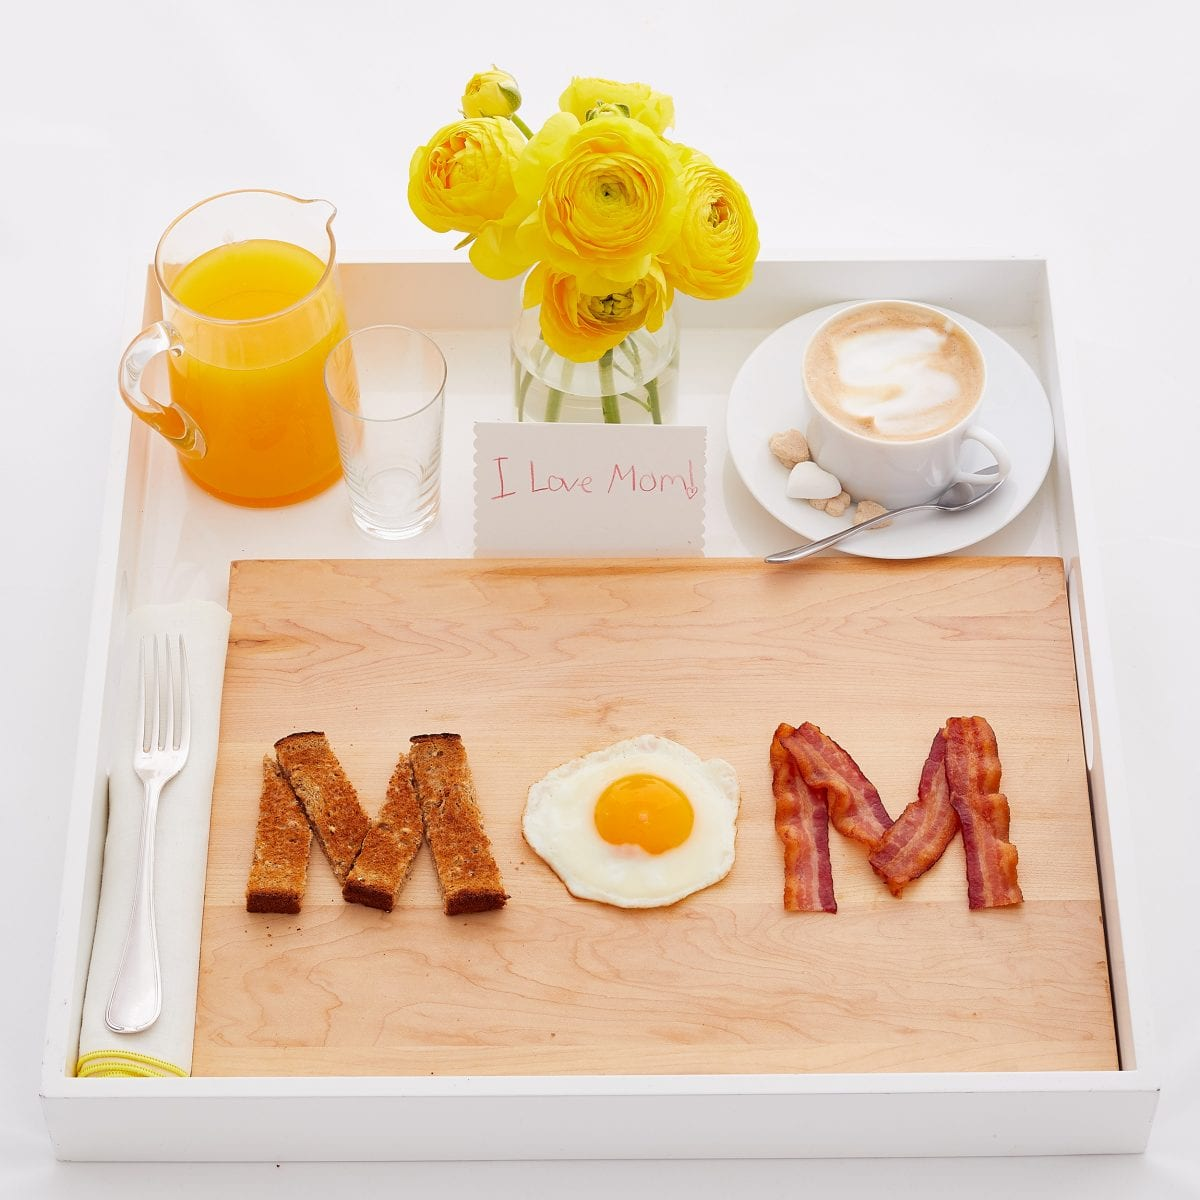 Darcy Miller, Darcy Miller Designs, Mother's Day, breakfast in bed, play with your food, creative breakfast, birthday